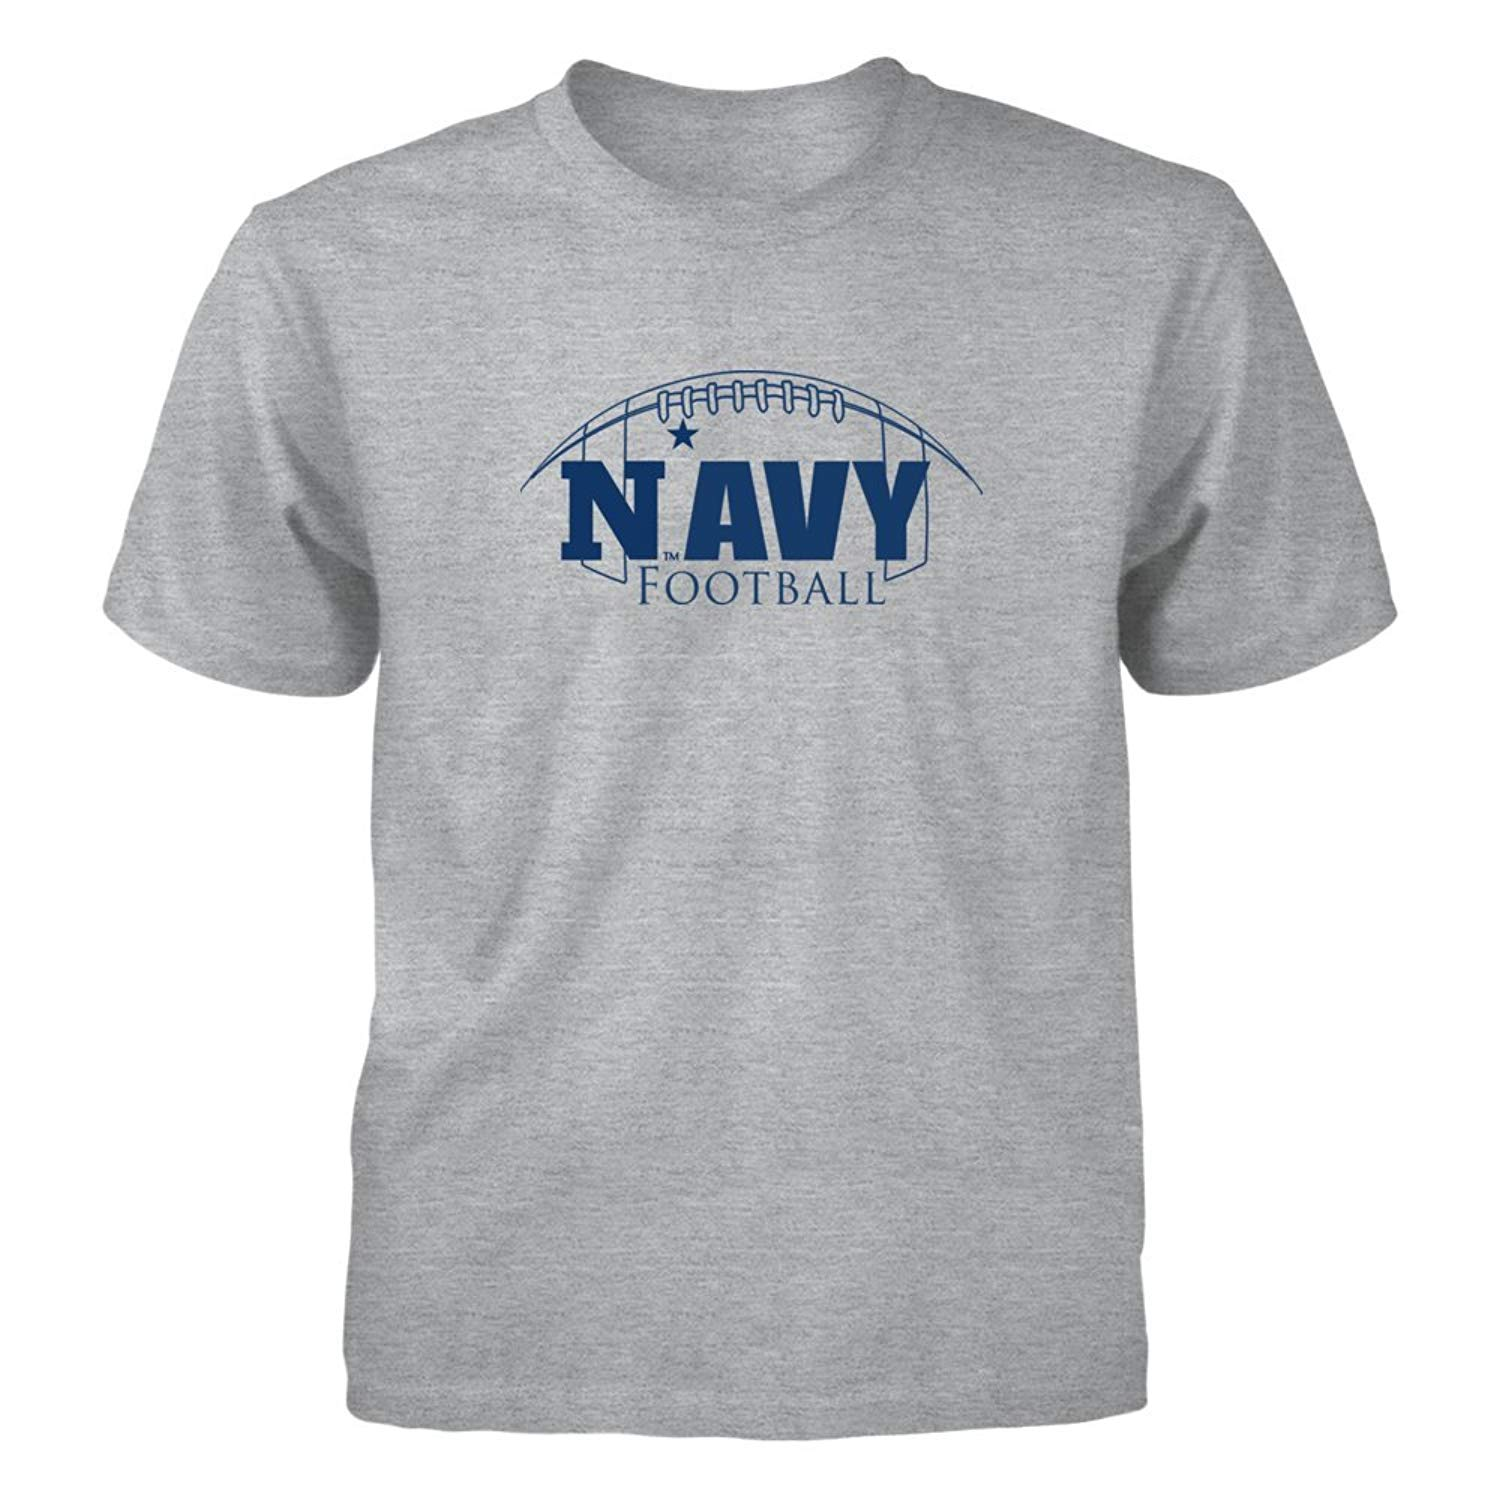 c6ad7acae Navy Football Clothing - US Naval Academy Athletics - T-Shirt - Officially  Licensed Fashion